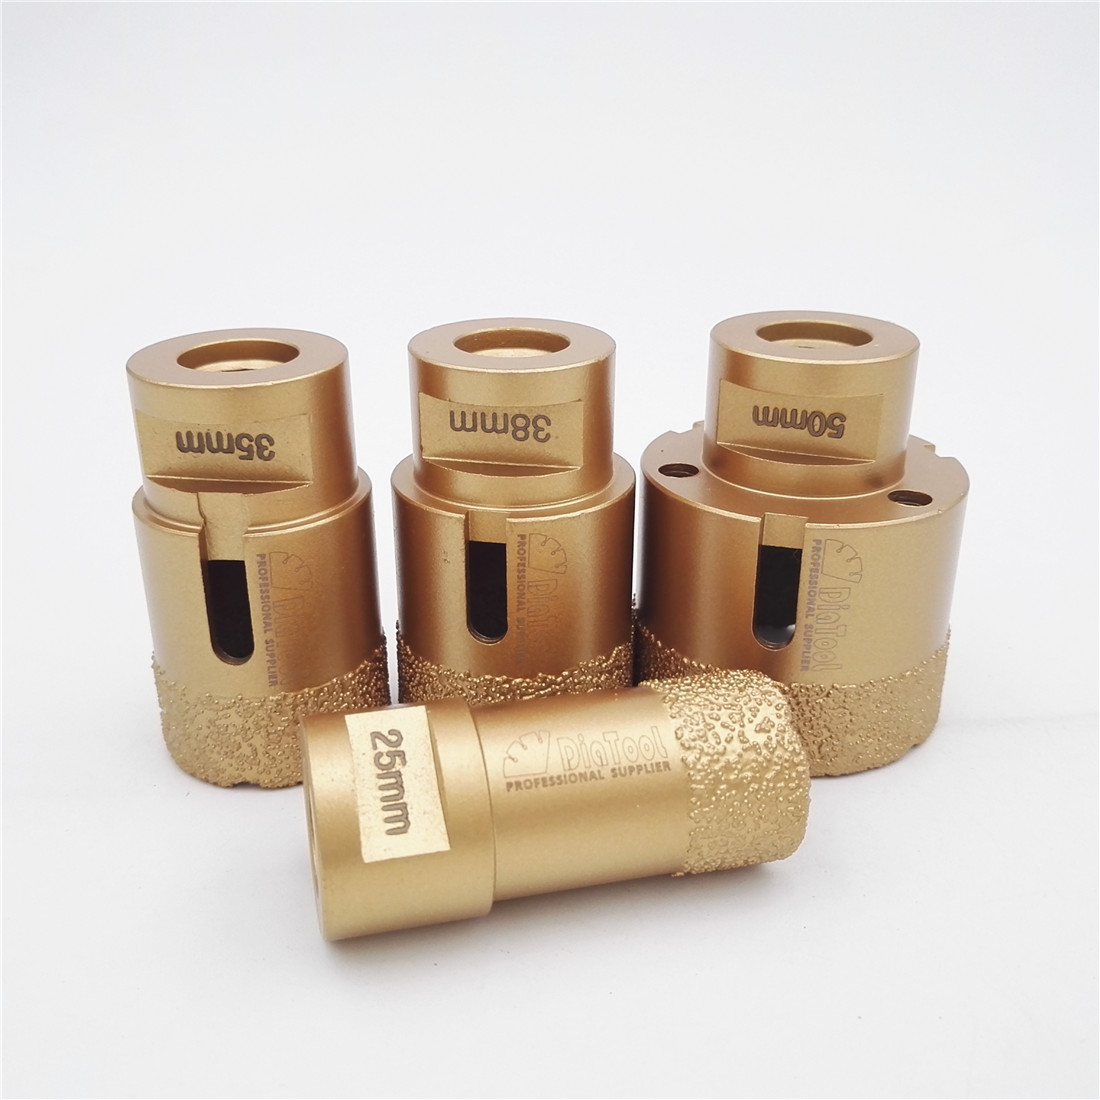 DIATOOL 4pcs Diamond Vacuum Brazed Drilling Core Bits With M14 Connection 15MM Diamond Height For Granite